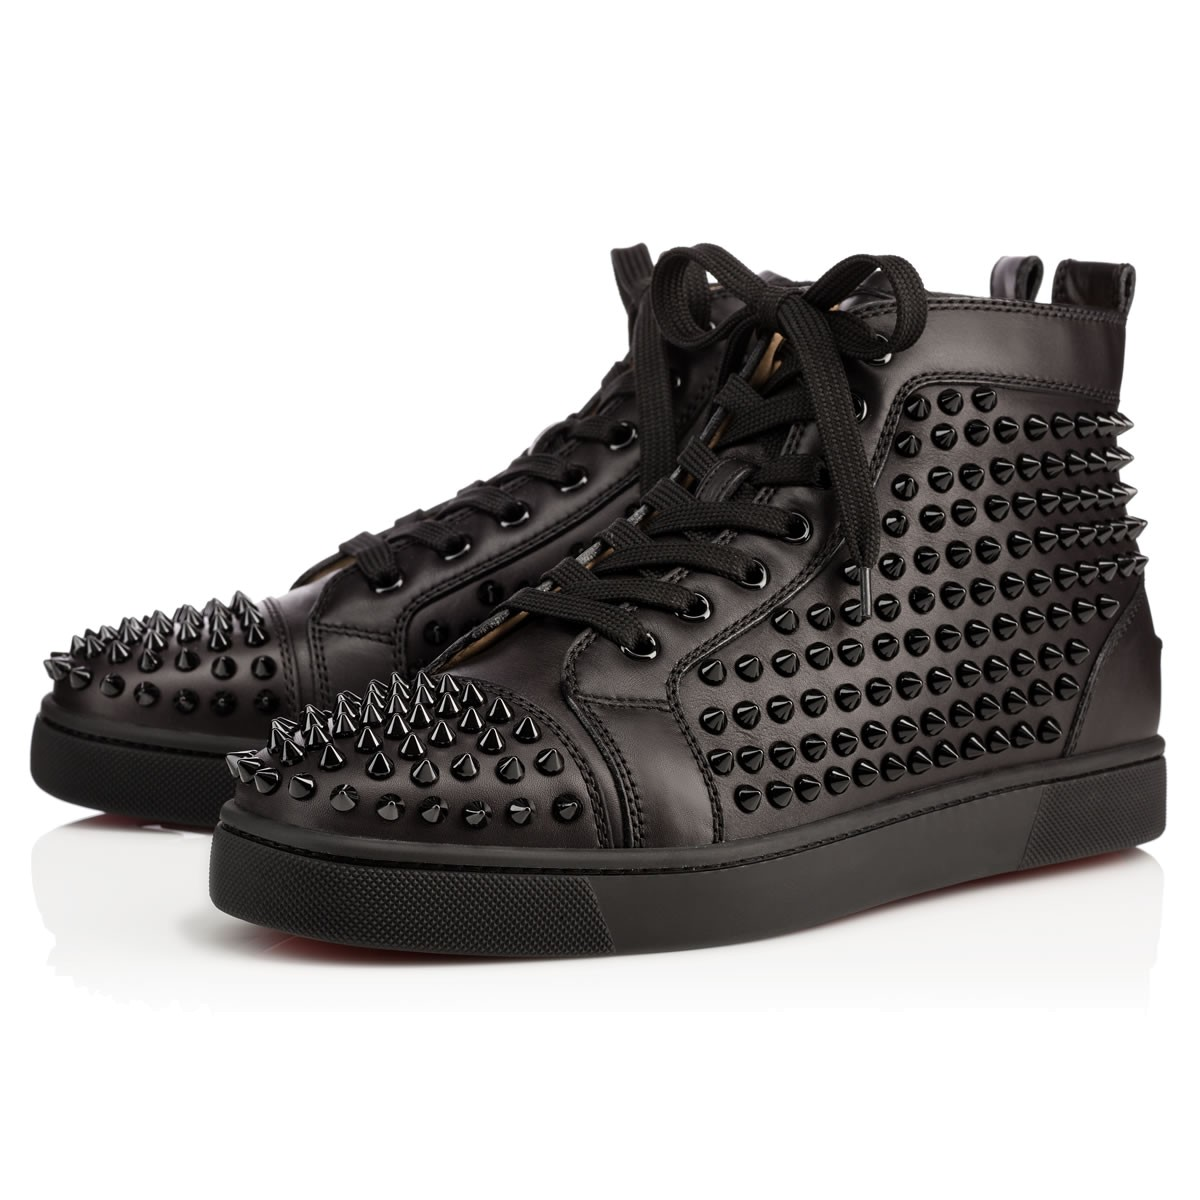 40ce6f4d6ffa8 Louis Spikes Men s Flat Black Black Bk Leather - Men Shoes ...